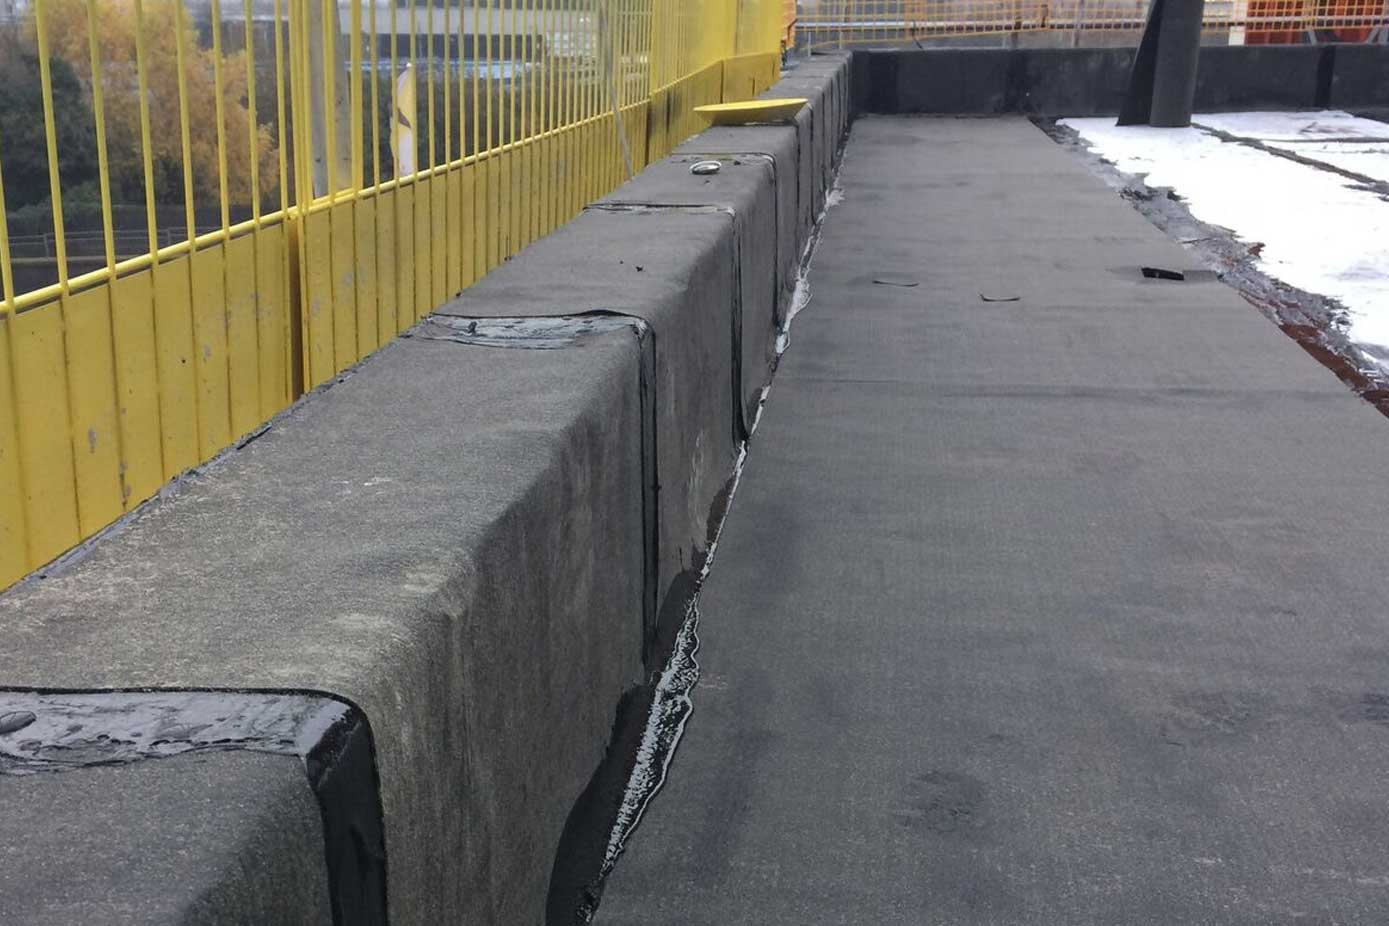 Hot melt roofing layer on a building